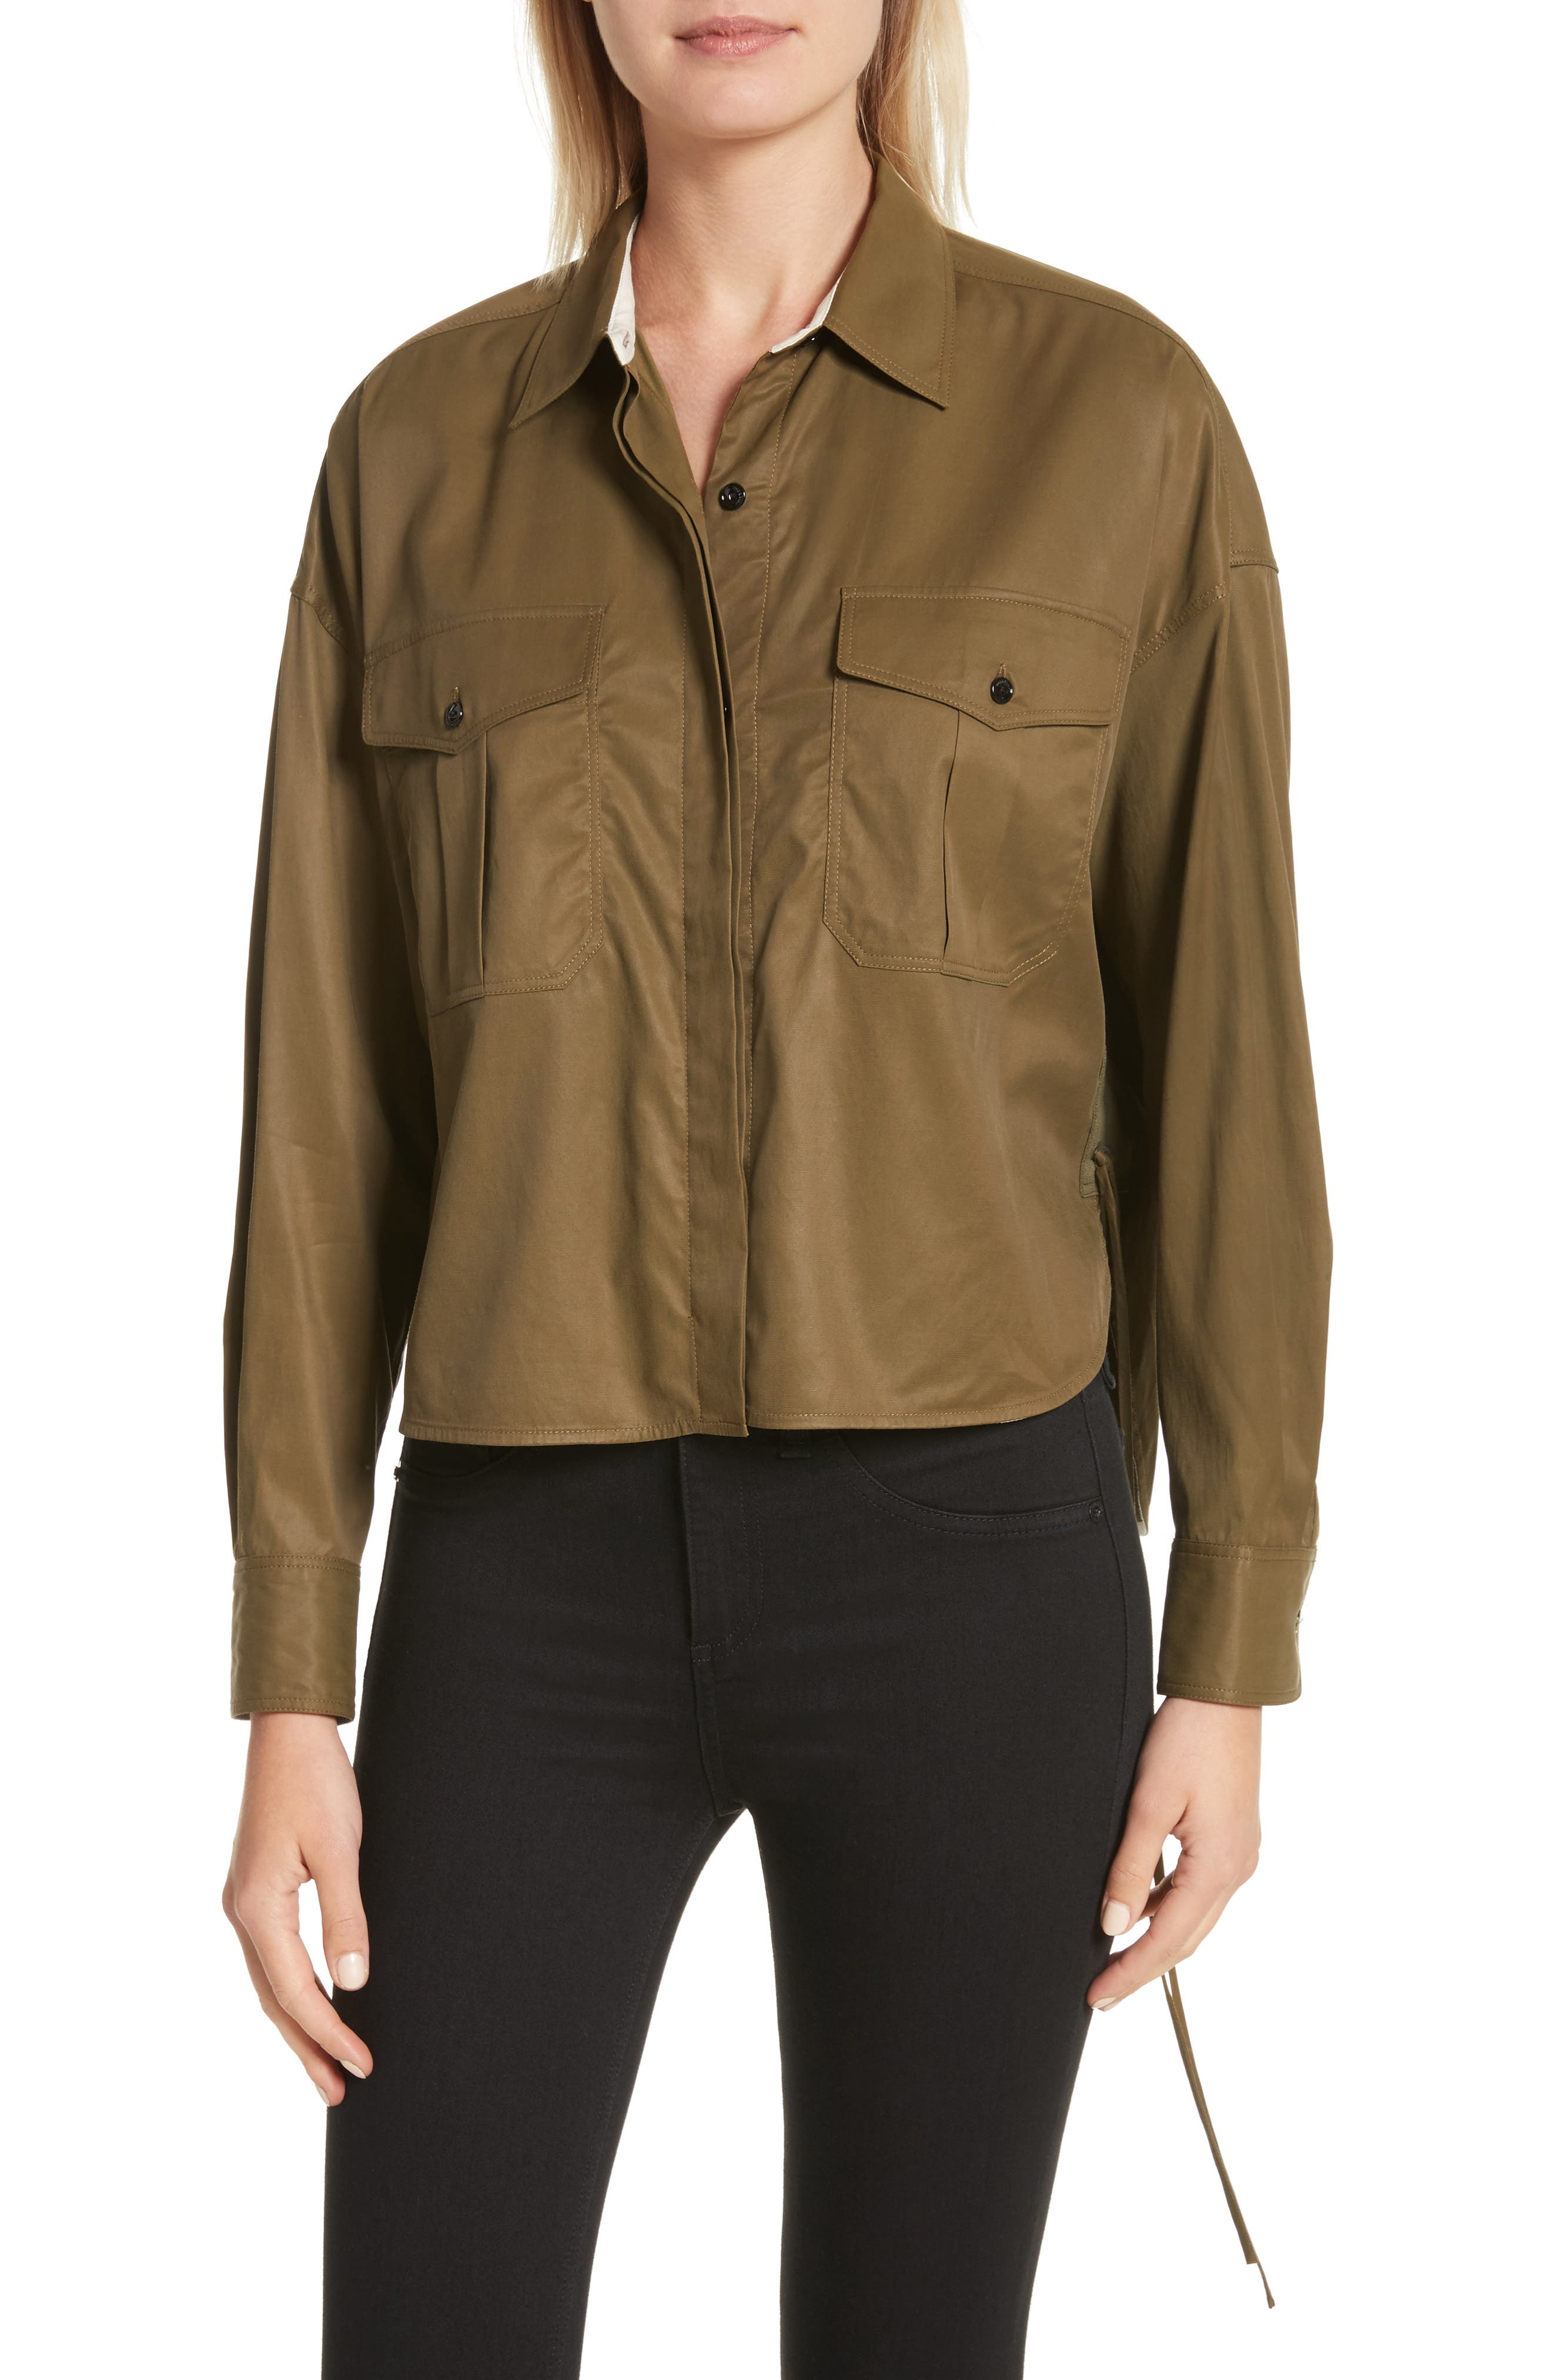 Mason Crop Shirt,                             Main thumbnail 1, color,                             Army Green